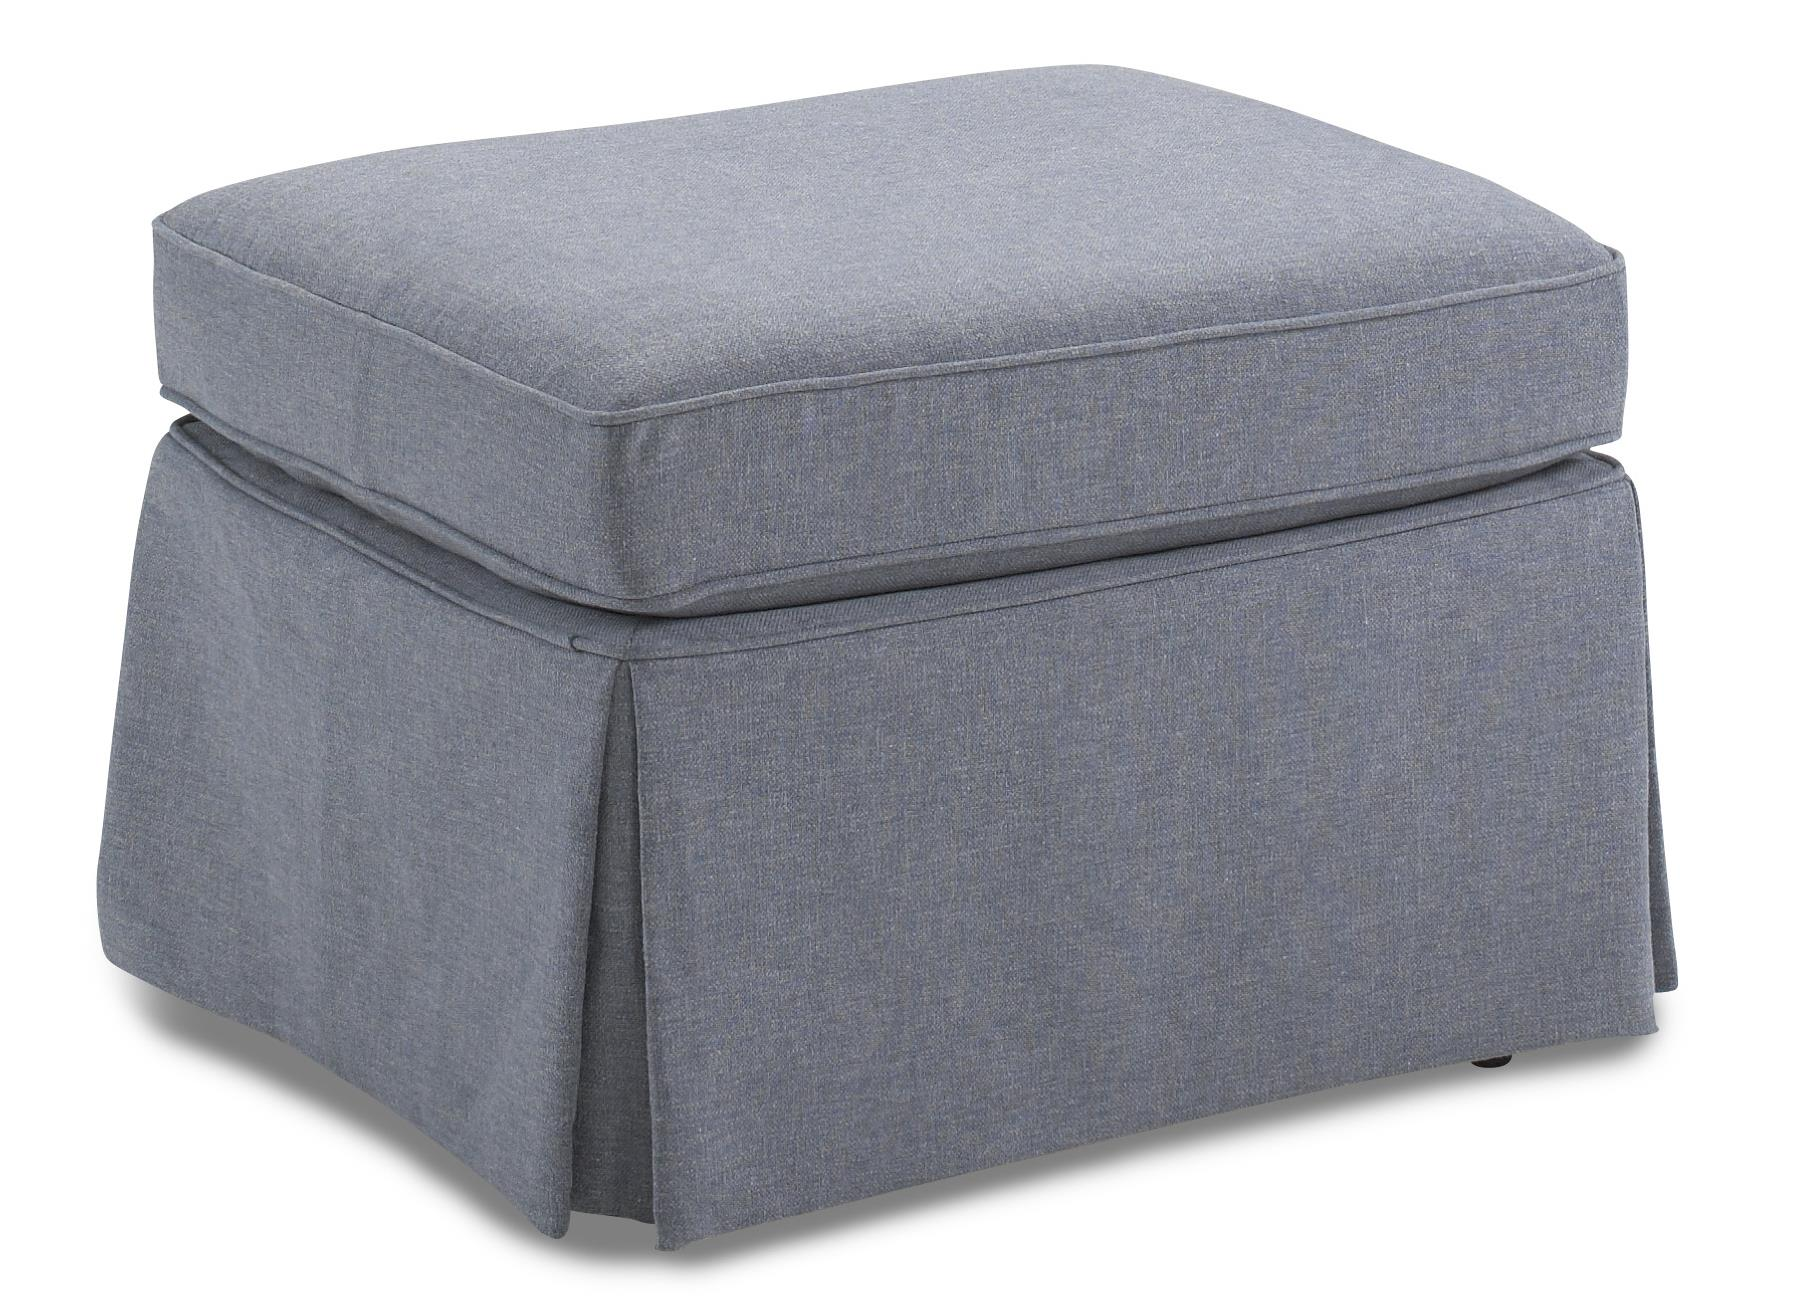 Best Home Furnishings Ottomans Skirted Glider Ottoman - Item Number: 0066